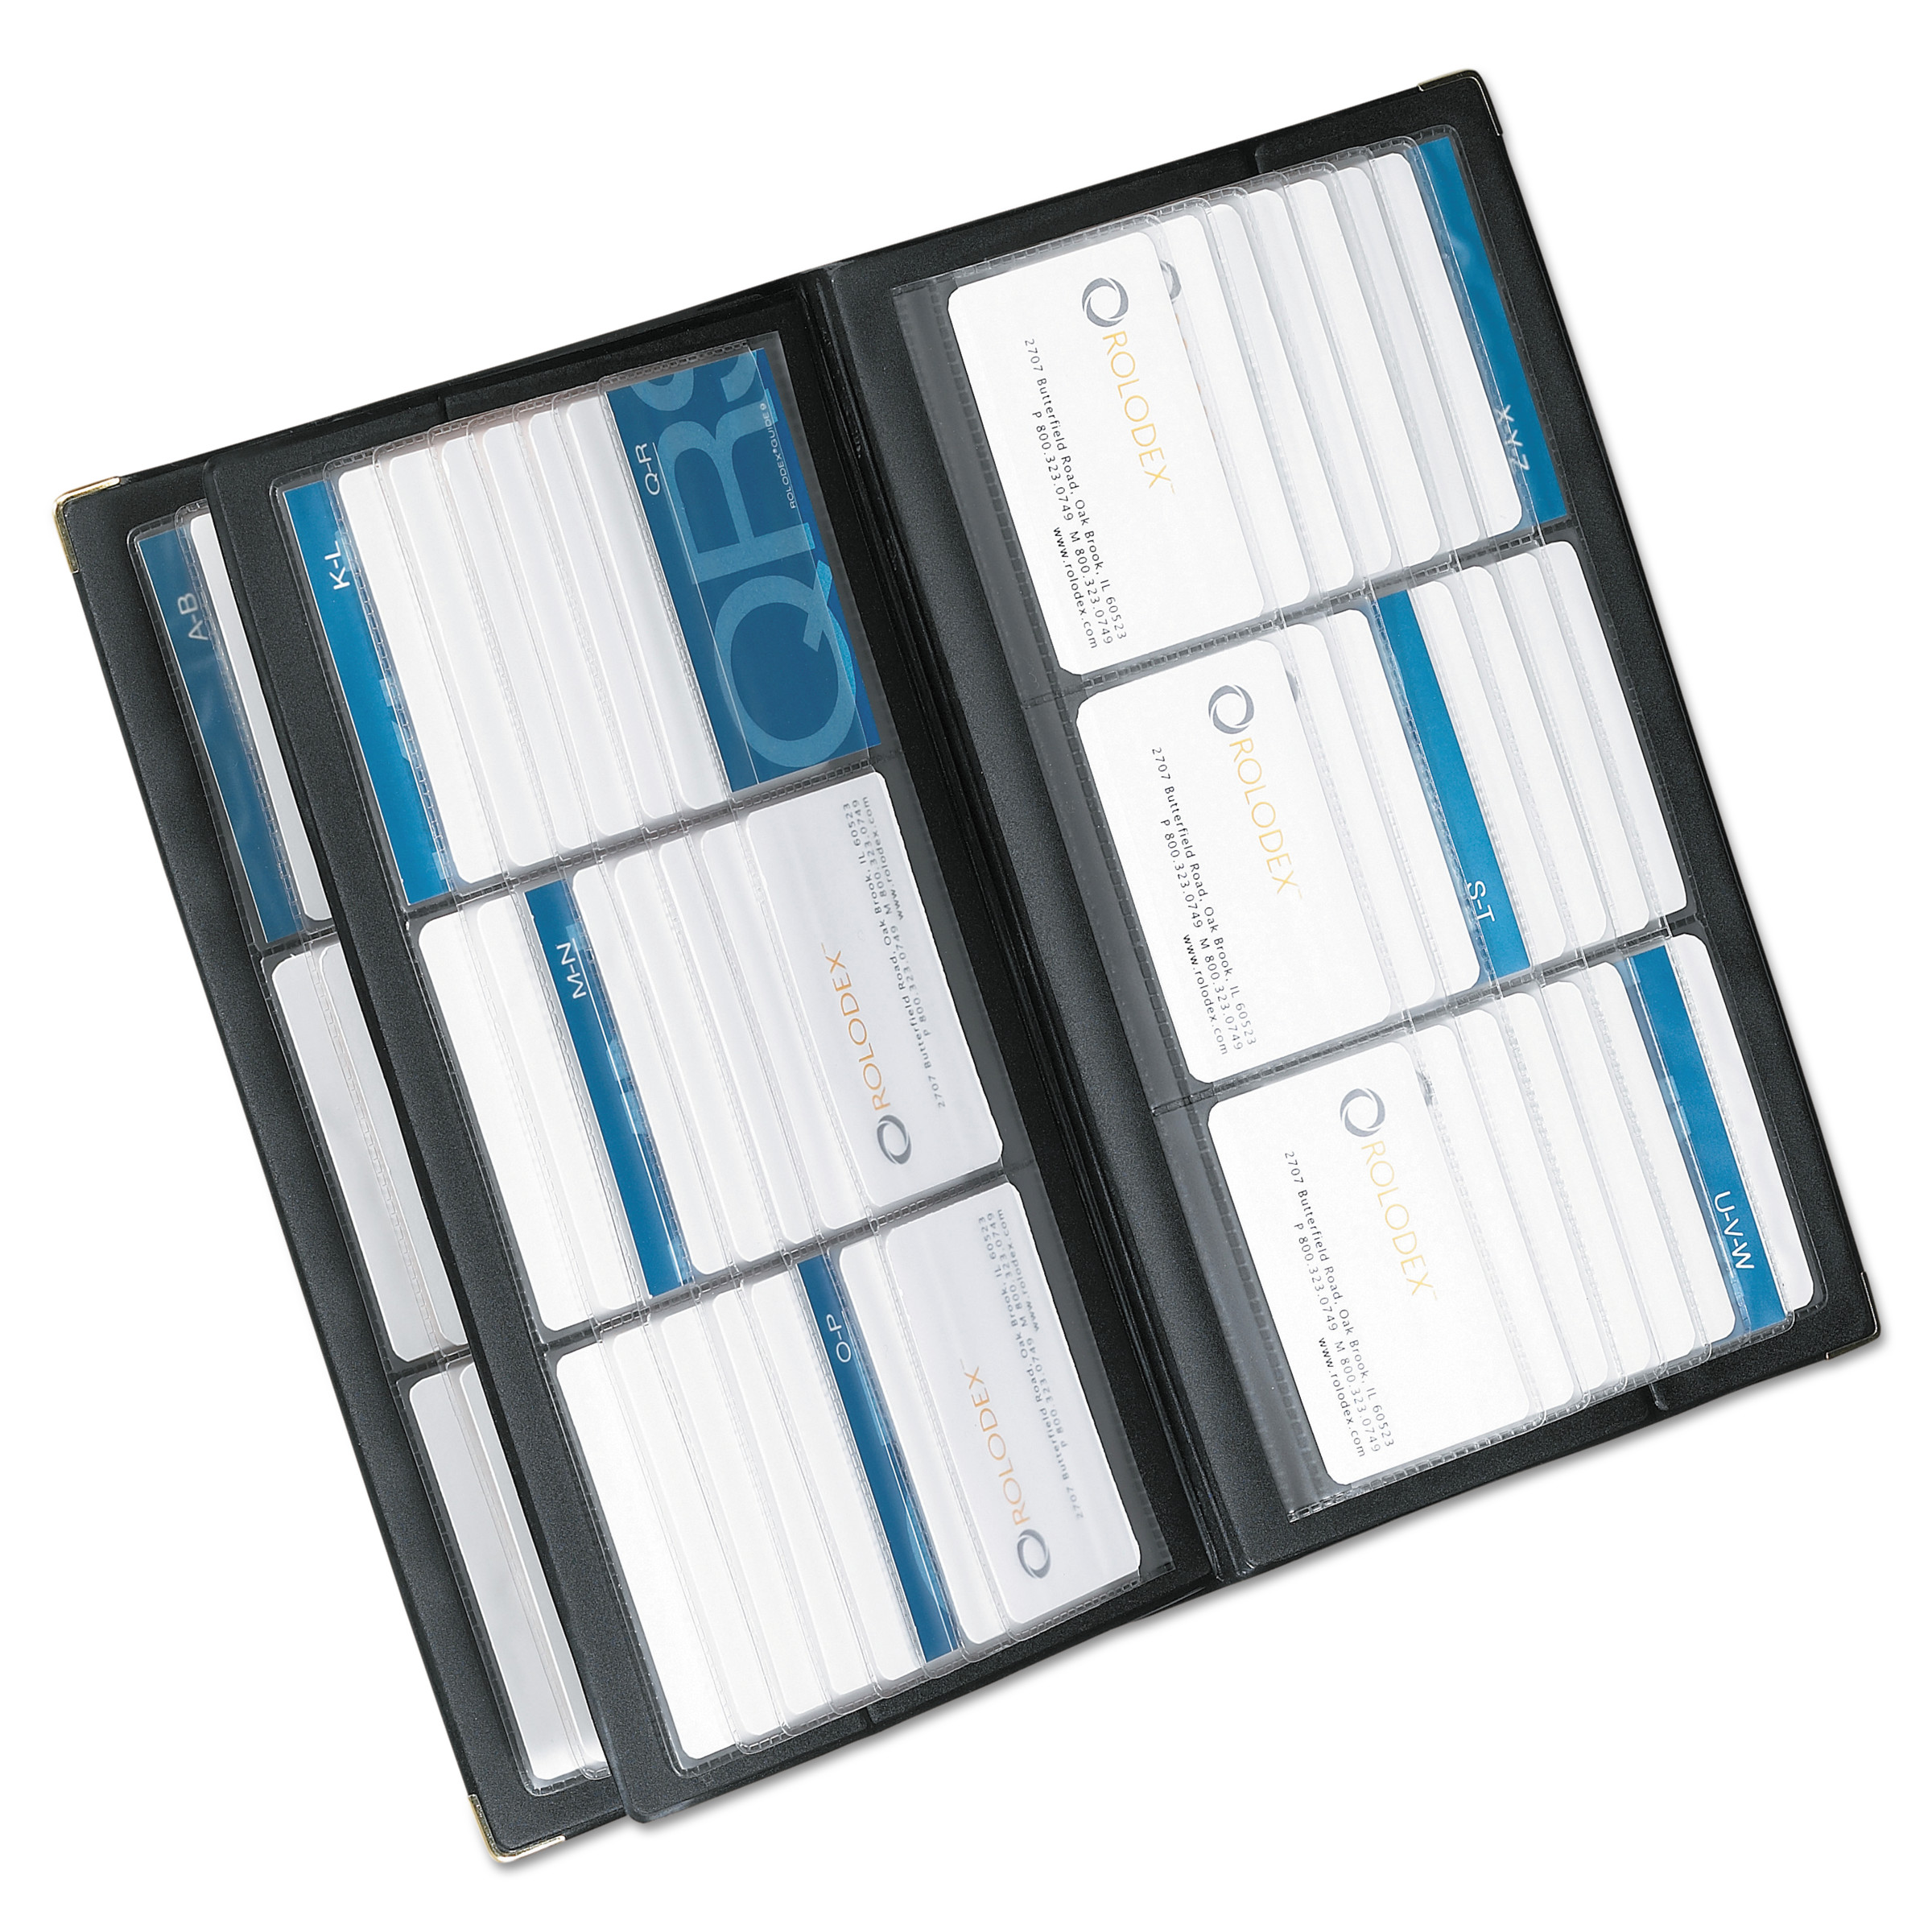 Rolodex Vinyl Business Card Book 6 2 14 x 3 35 CardsPage 32